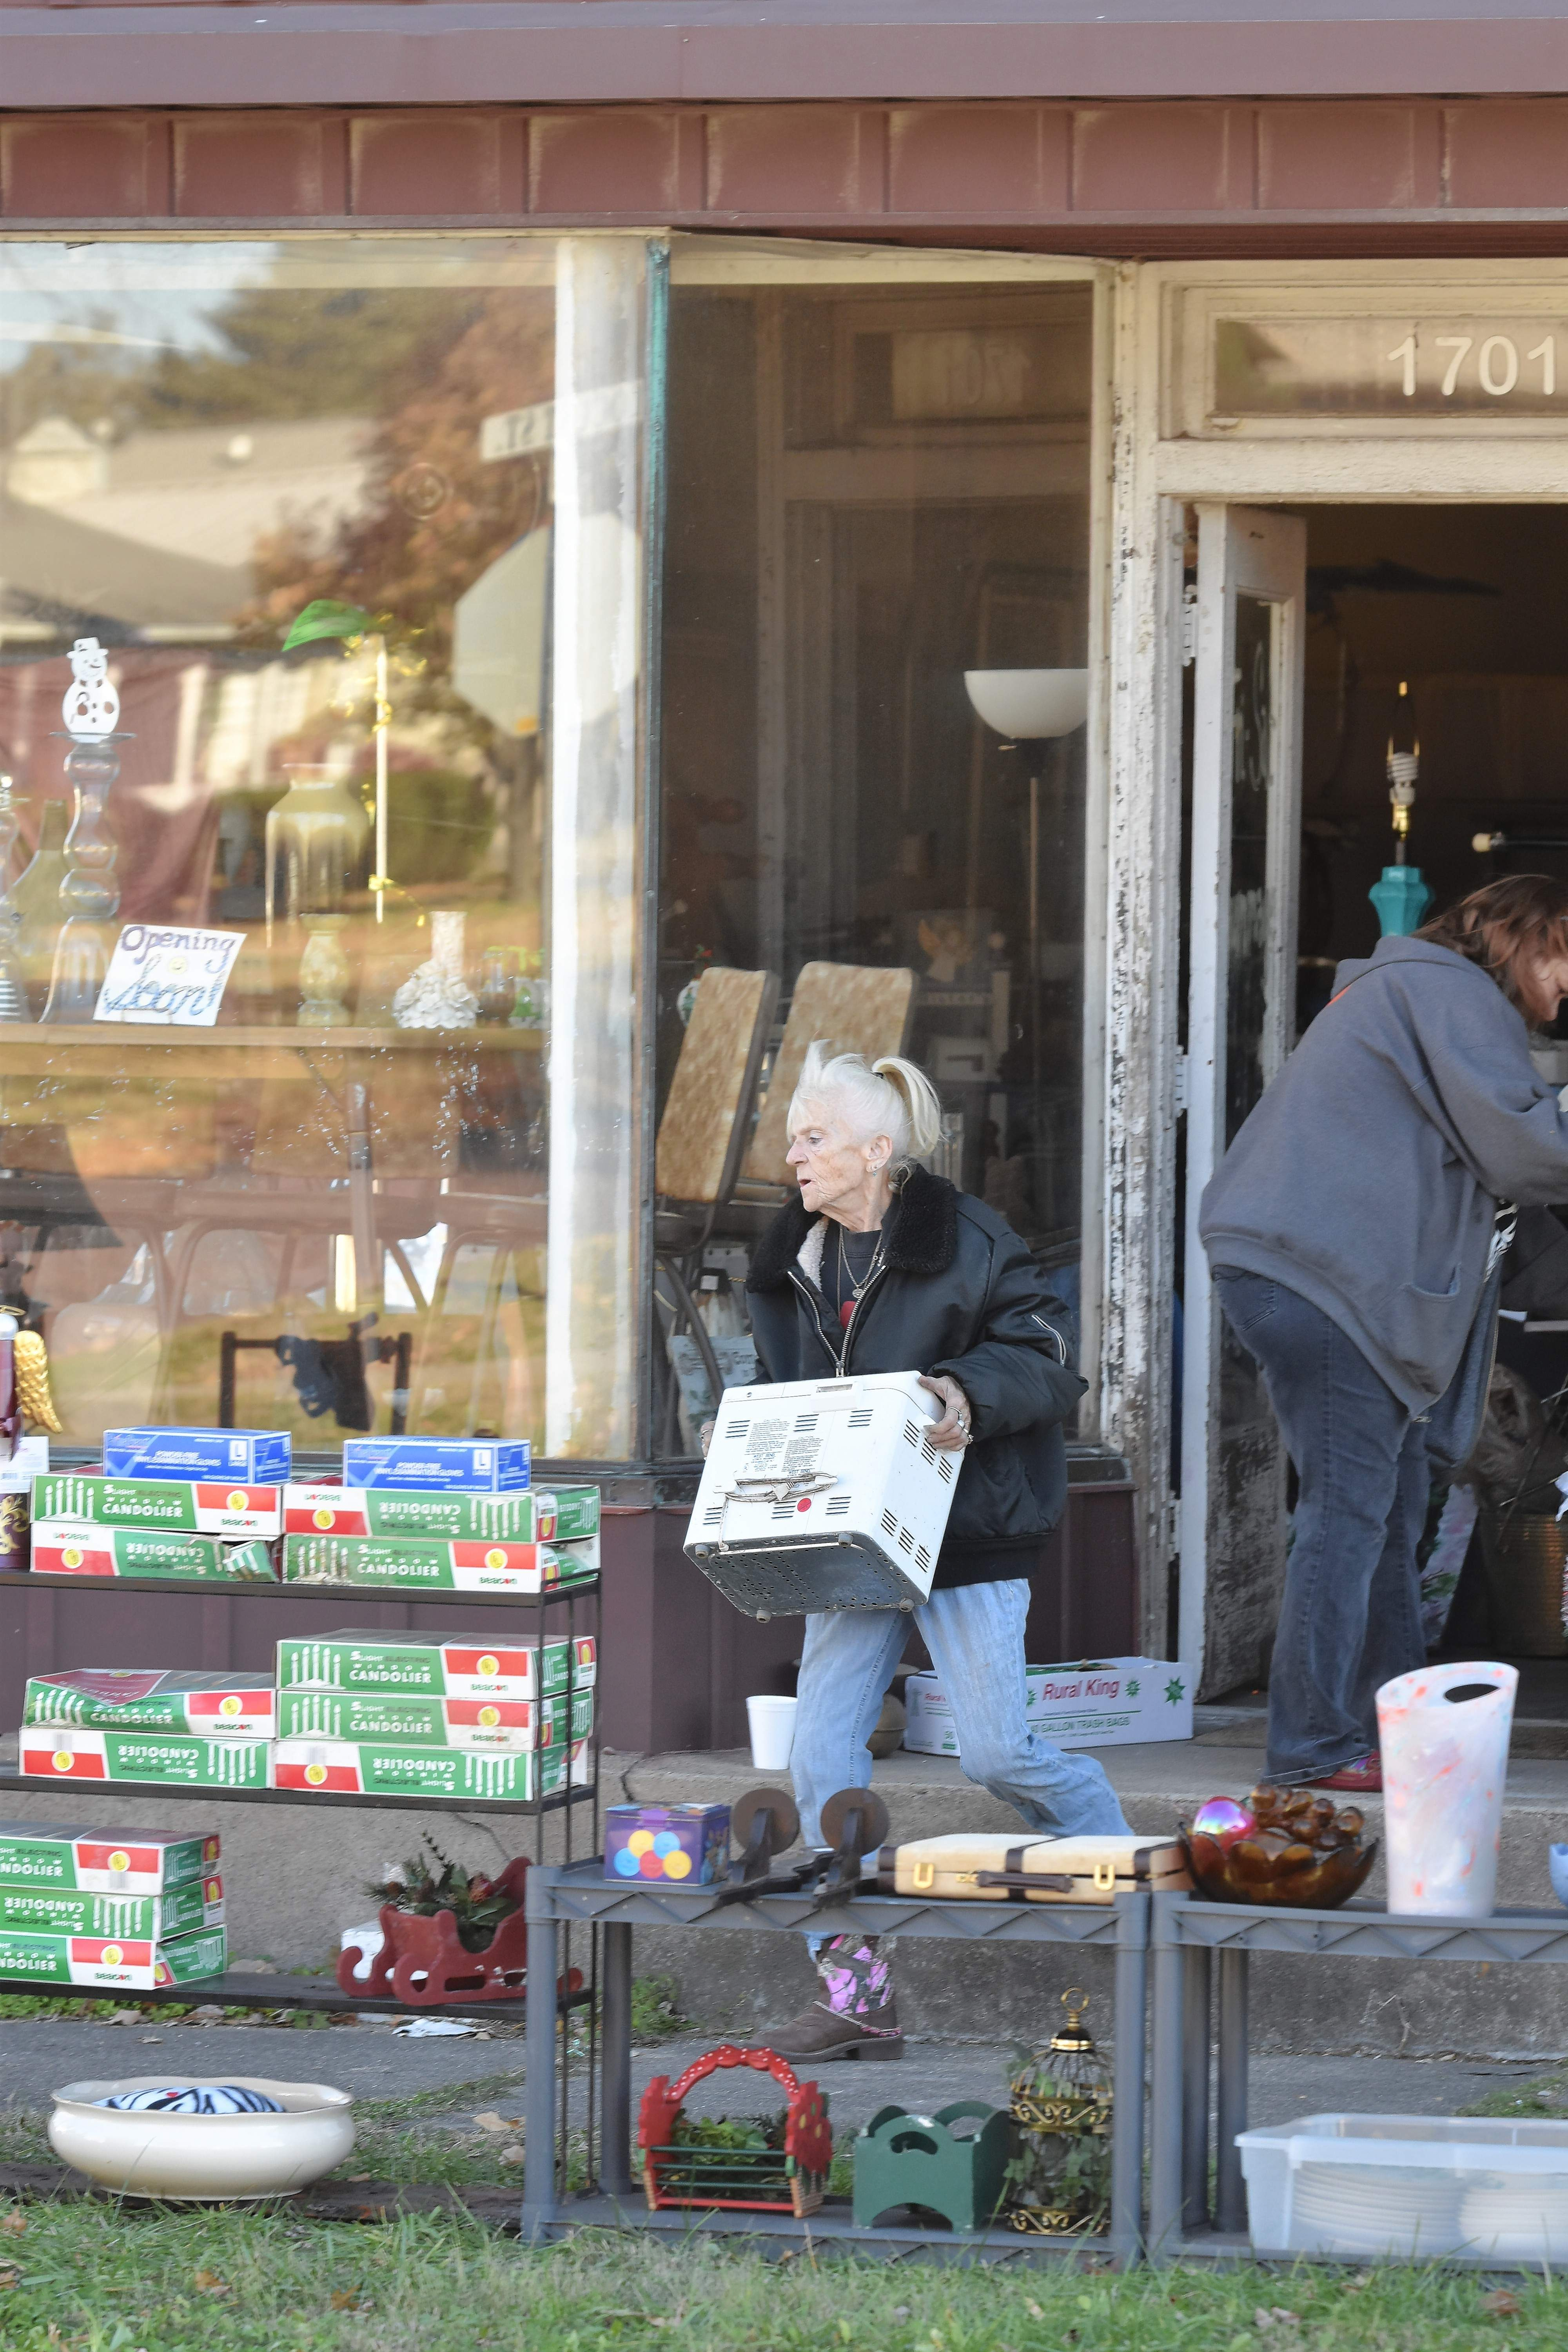 Sandy Gwaltney of Eldorado moves some merchandise as she sets up for the reopening of her business, Cassandra's Forget Me Not ... Again. Gwaltney's old store burned on Oct. 29.